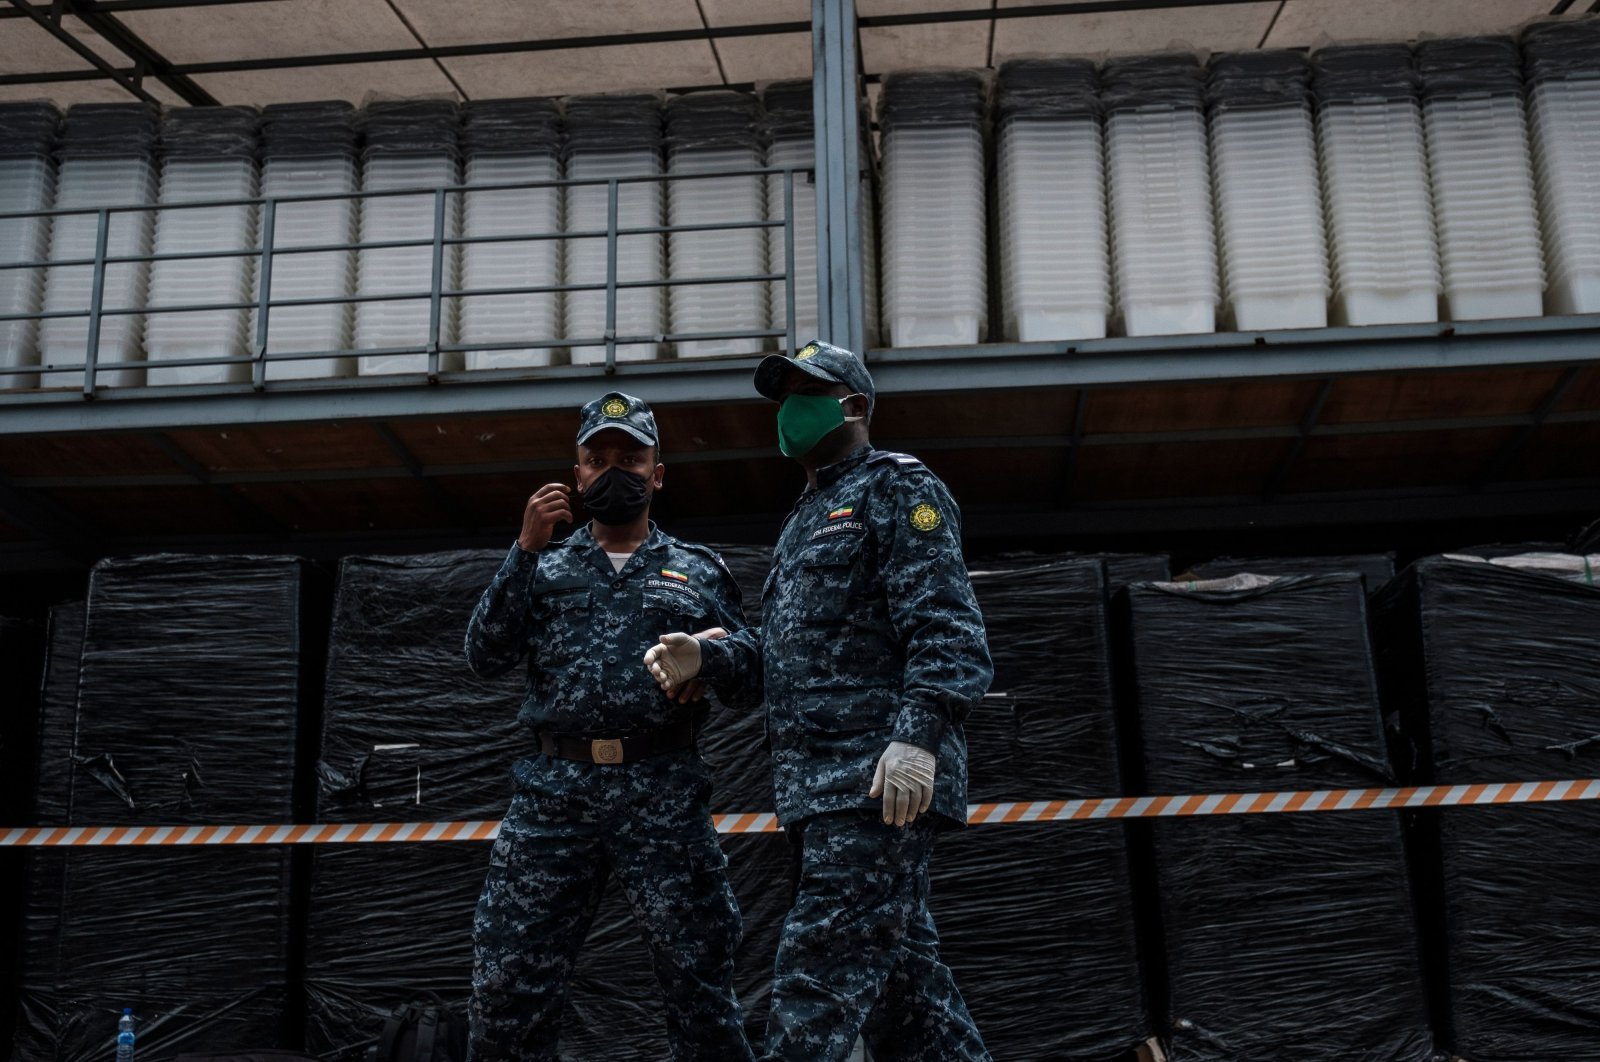 Police officers guard ballot boxes in a warehouse of the National Election Board of Ethiopia (NEBE), in Addis Ababa, Ethiopia, Oct. 2, 2020. (AFP Photo)